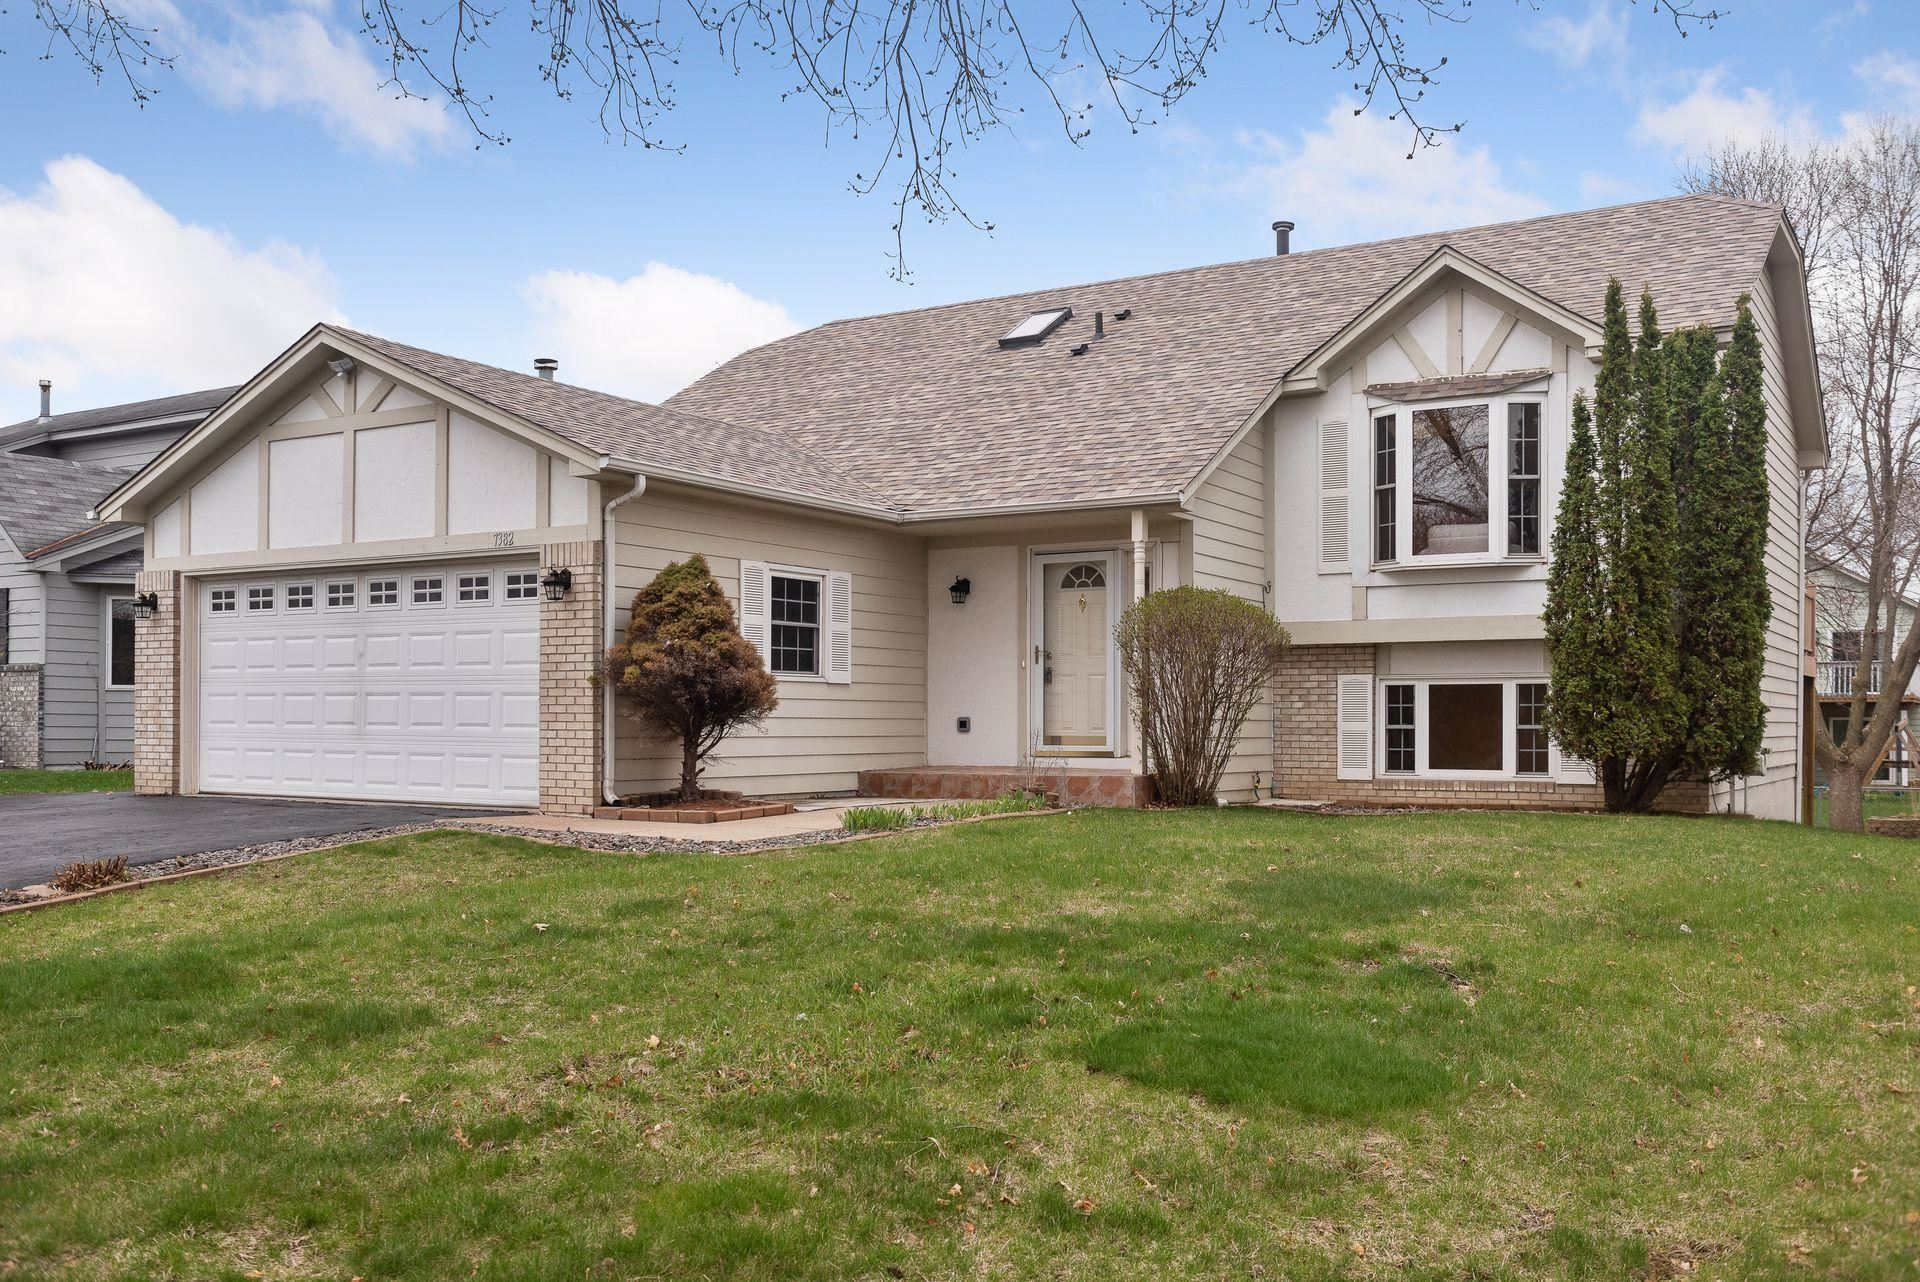 Photo of 7382 Upper 157th Street W, Apple Valley, MN 55124 (MLS # 5719369)